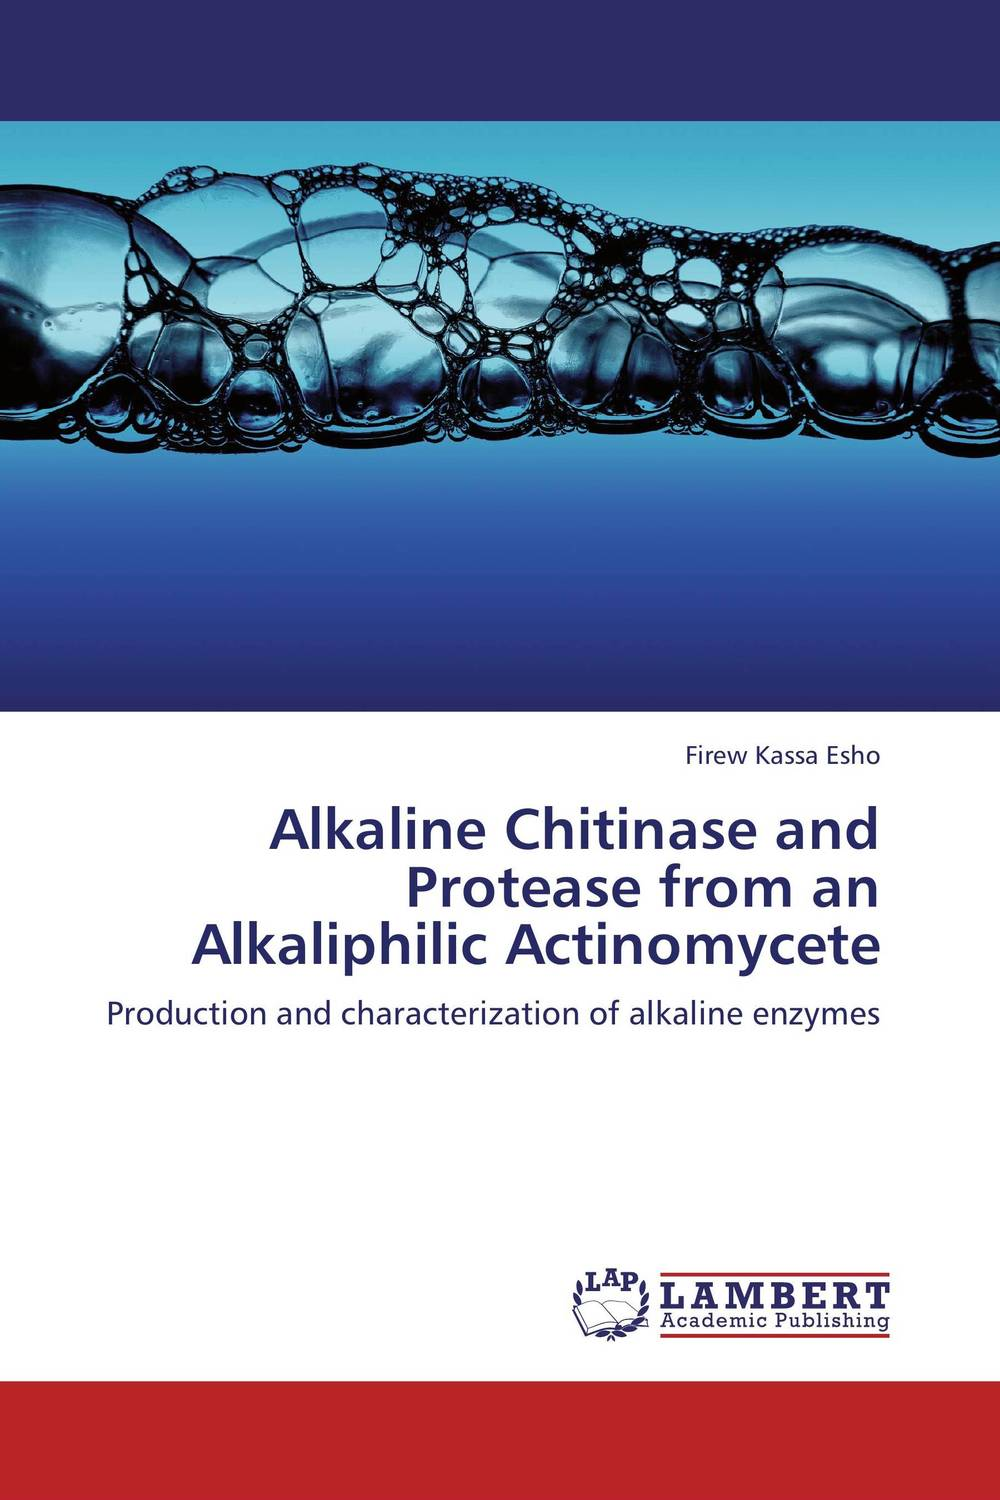 Alkaline Chitinase and Protease from an Alkaliphilic Actinomycete kitcpm04910cteveen91 value kit colgate palmolive dishwashing liquid cpm04910ct and energizer industrial alkaline batteries eveen91